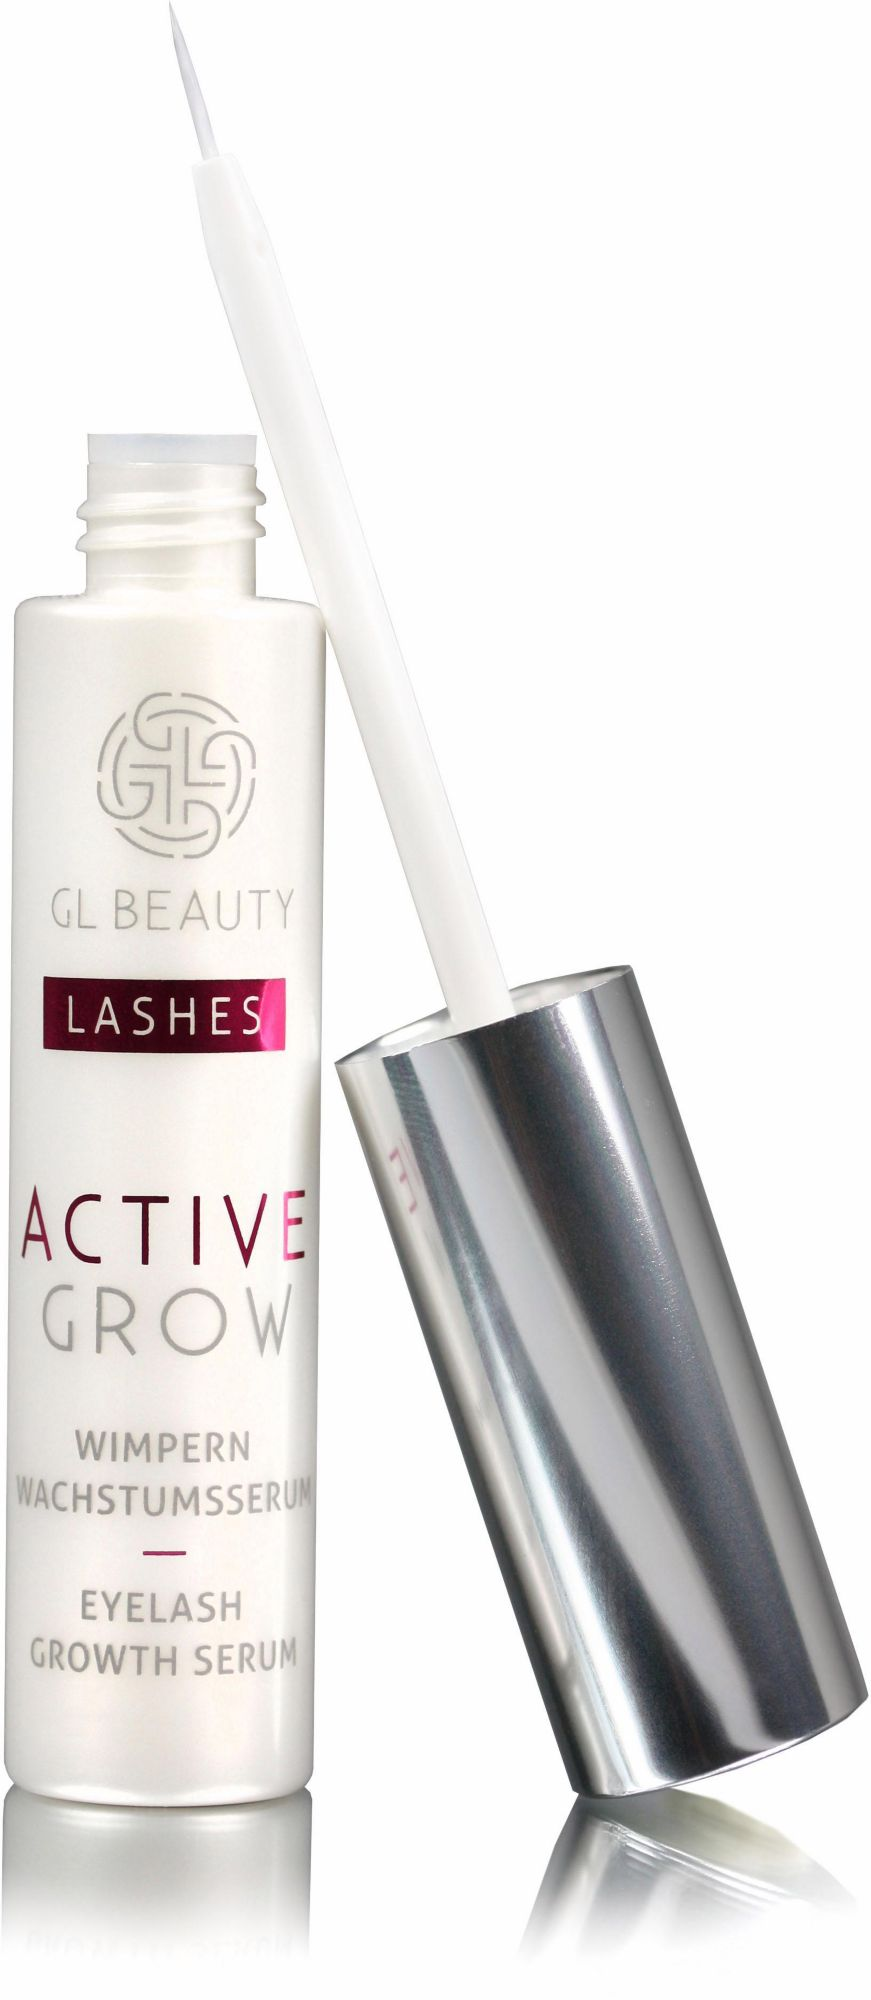 GL BEAUTY GL Beauty, »Active Grow«, Wimpern Wachstumsserum